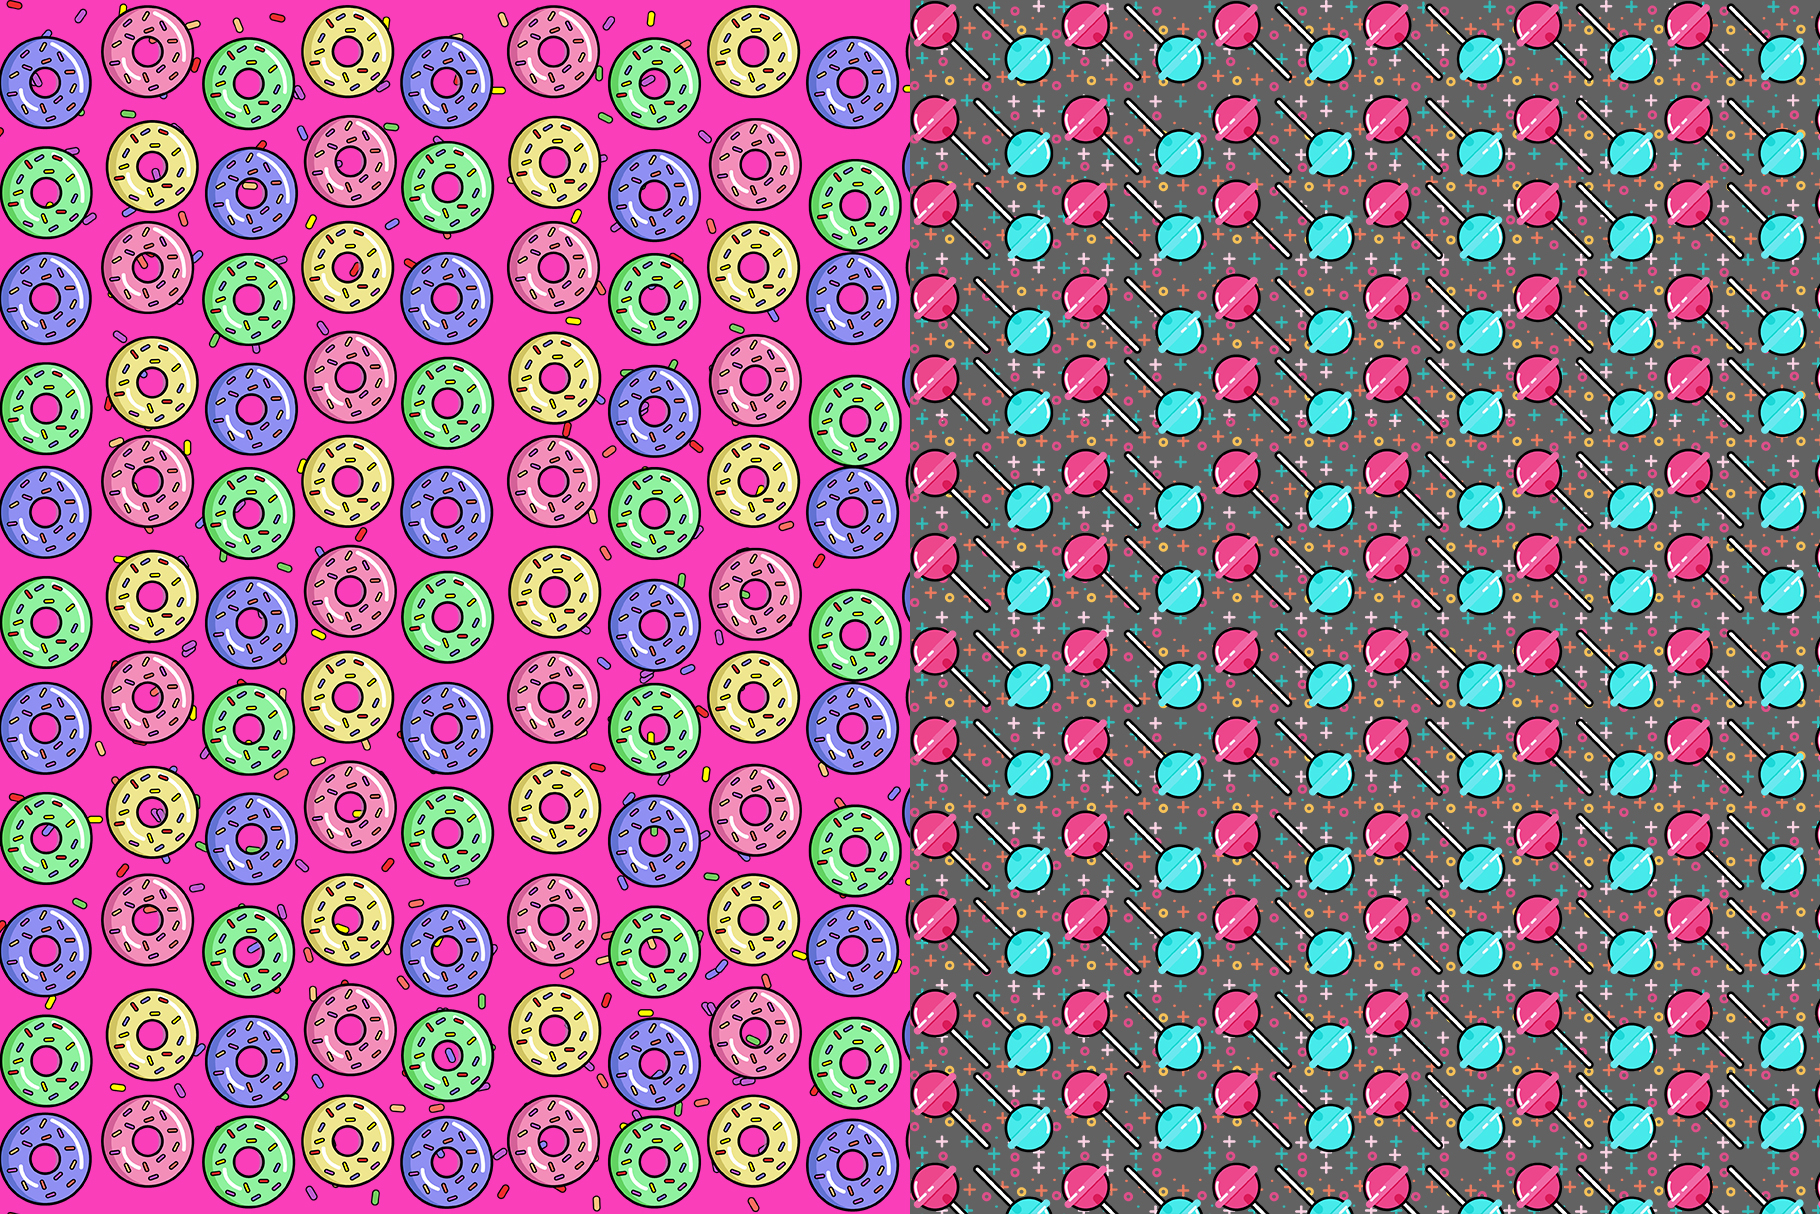 10 Sweets Seamless Patterns example image 5